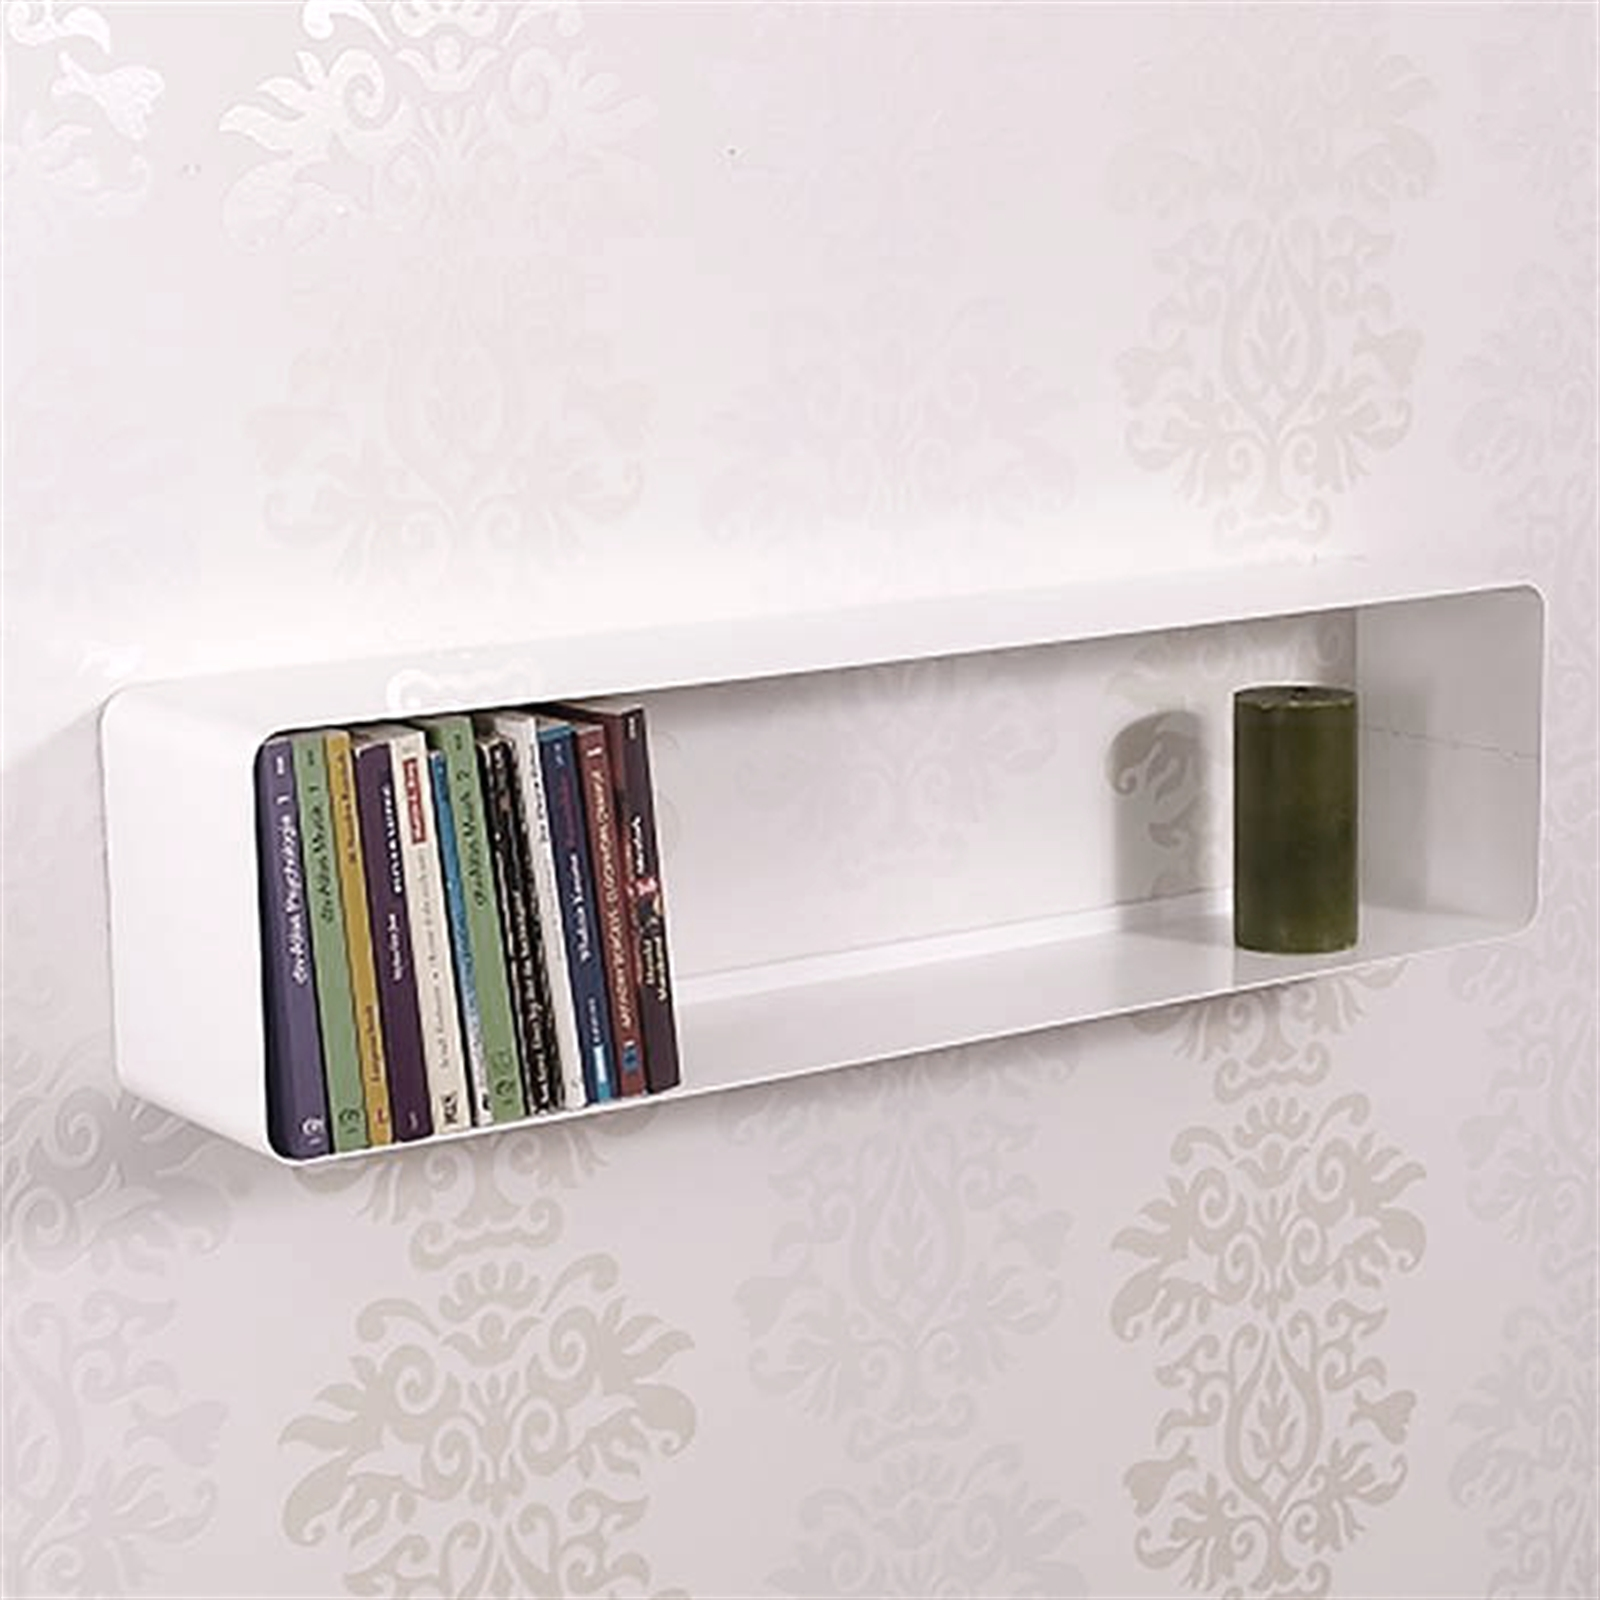 retro design dvd blu ray shelf cube 31 metal white lounge wall rack ebay. Black Bedroom Furniture Sets. Home Design Ideas